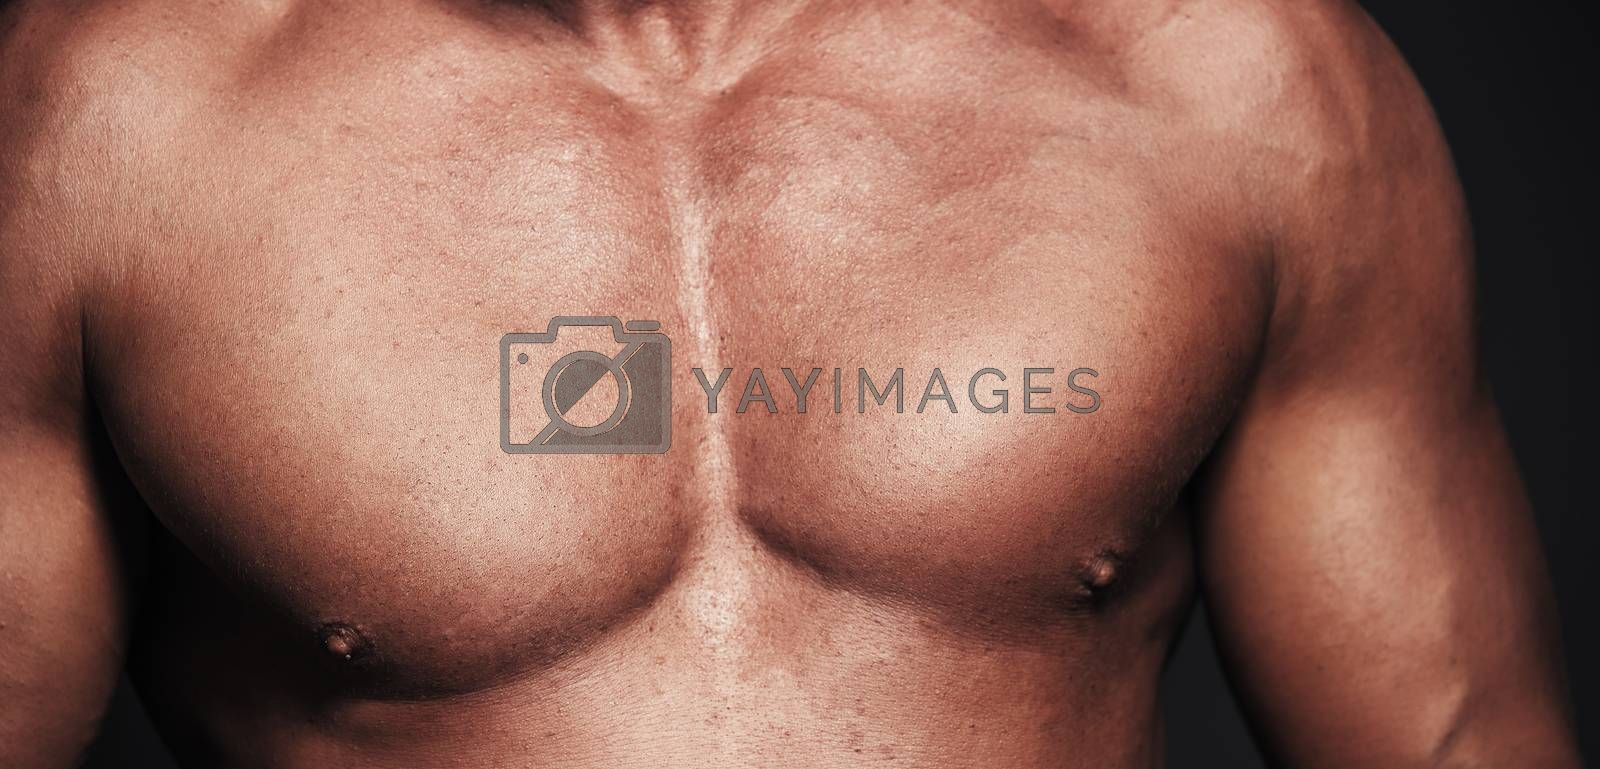 Close-up view on a muscular body. Topless man